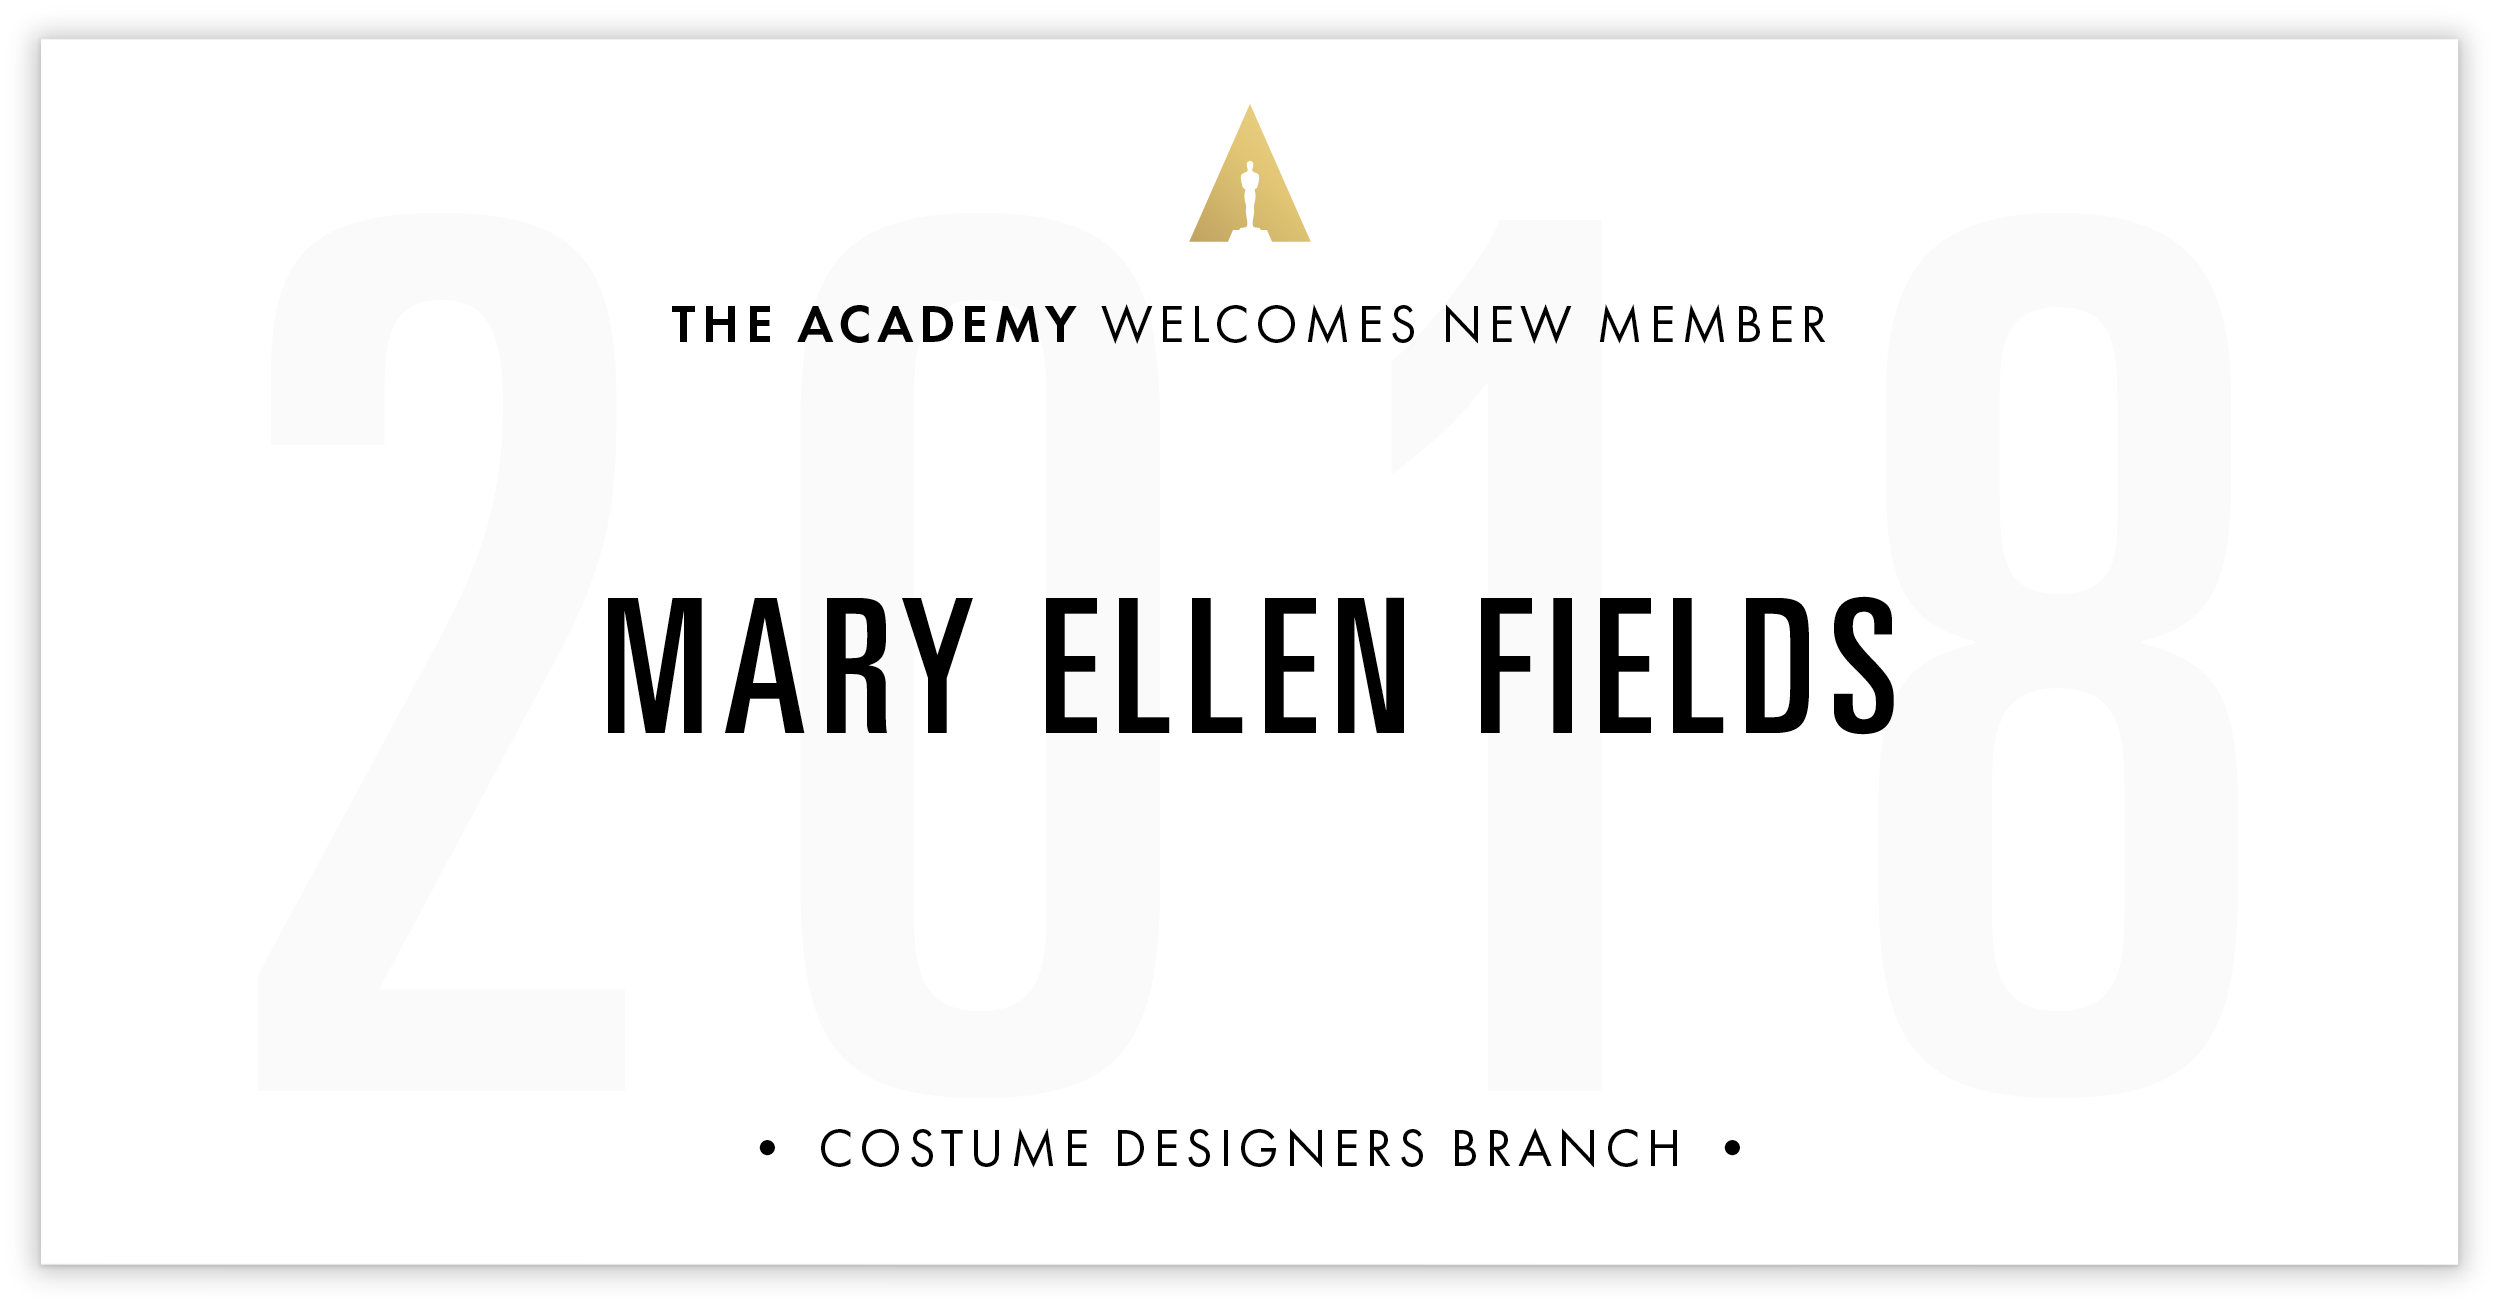 Mary Ellen Fields is invited!